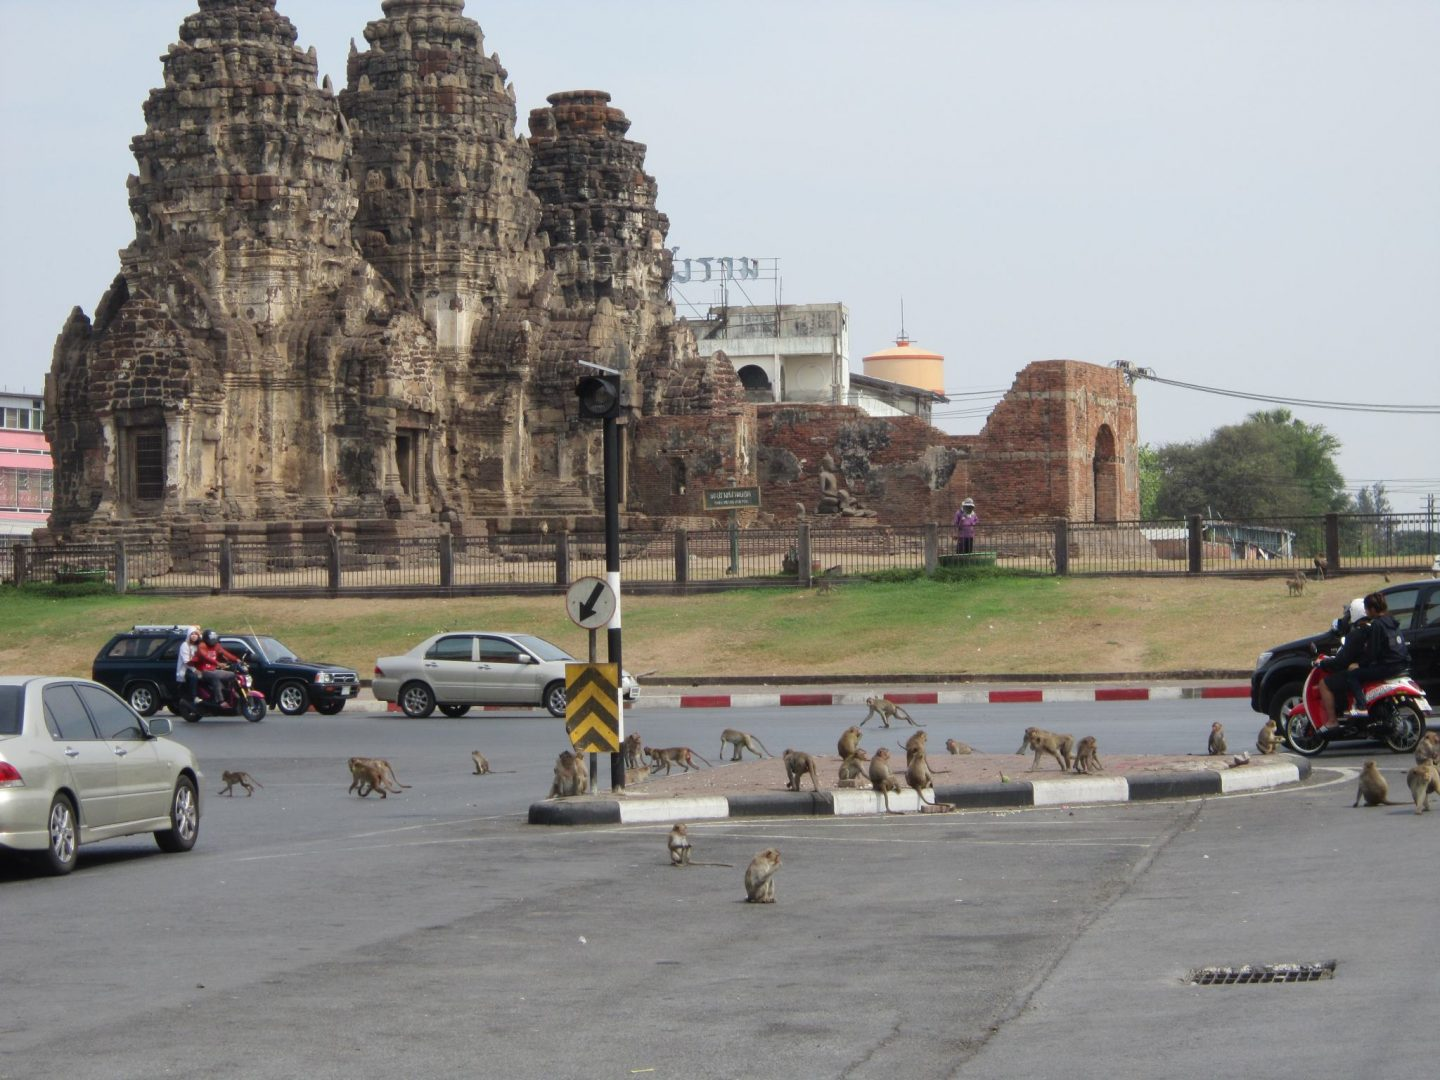 Lopburi - monkeys running across the road, monkey temple in the background